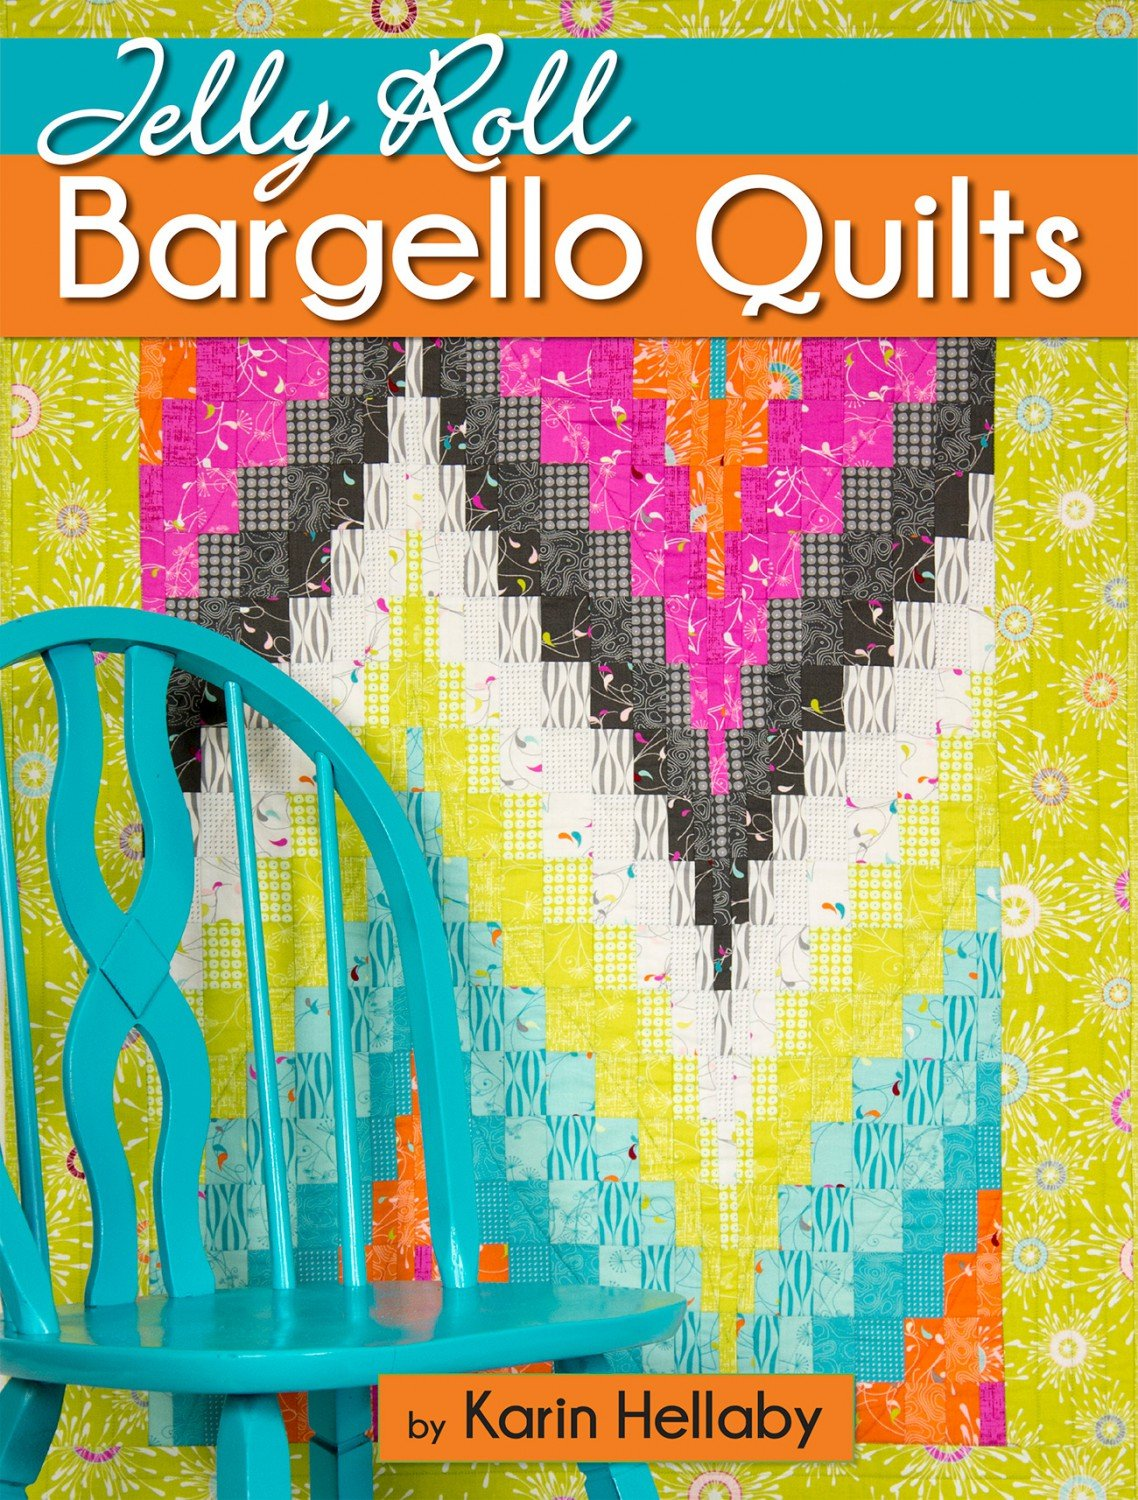 Jelly Roll Bargello Quilts - L010